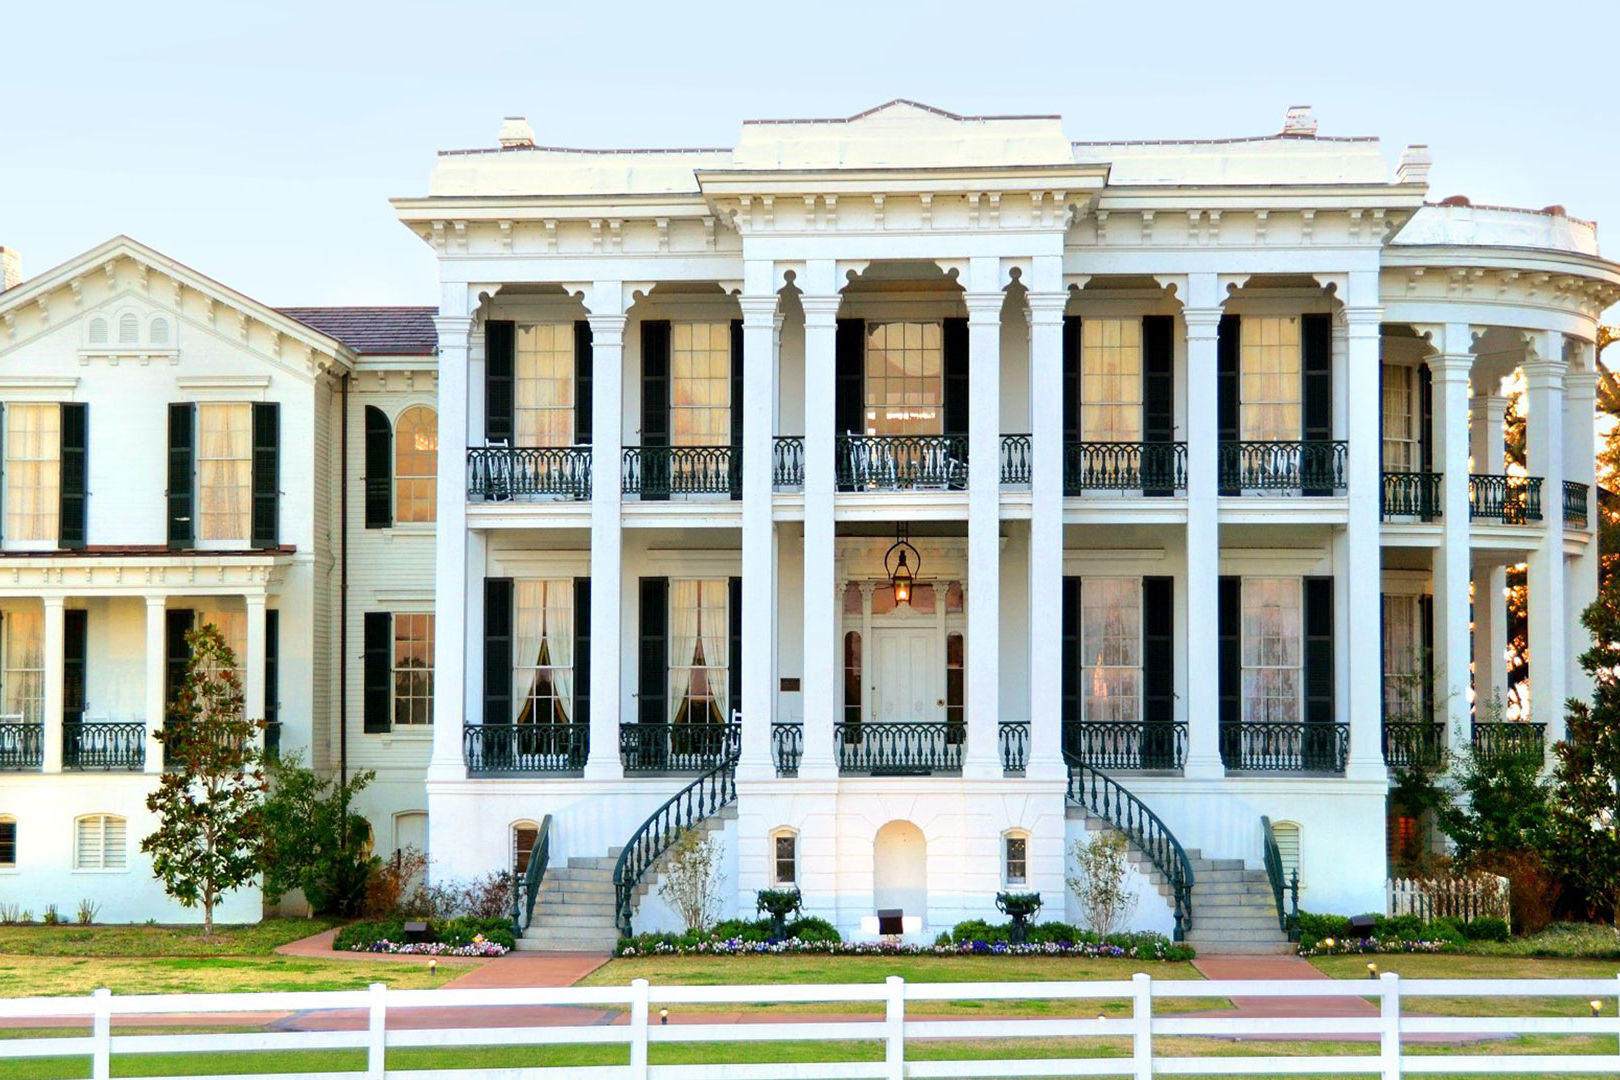 Louisiana's Largest Remaining Antebellum Mansion Sold to Hotel Developer